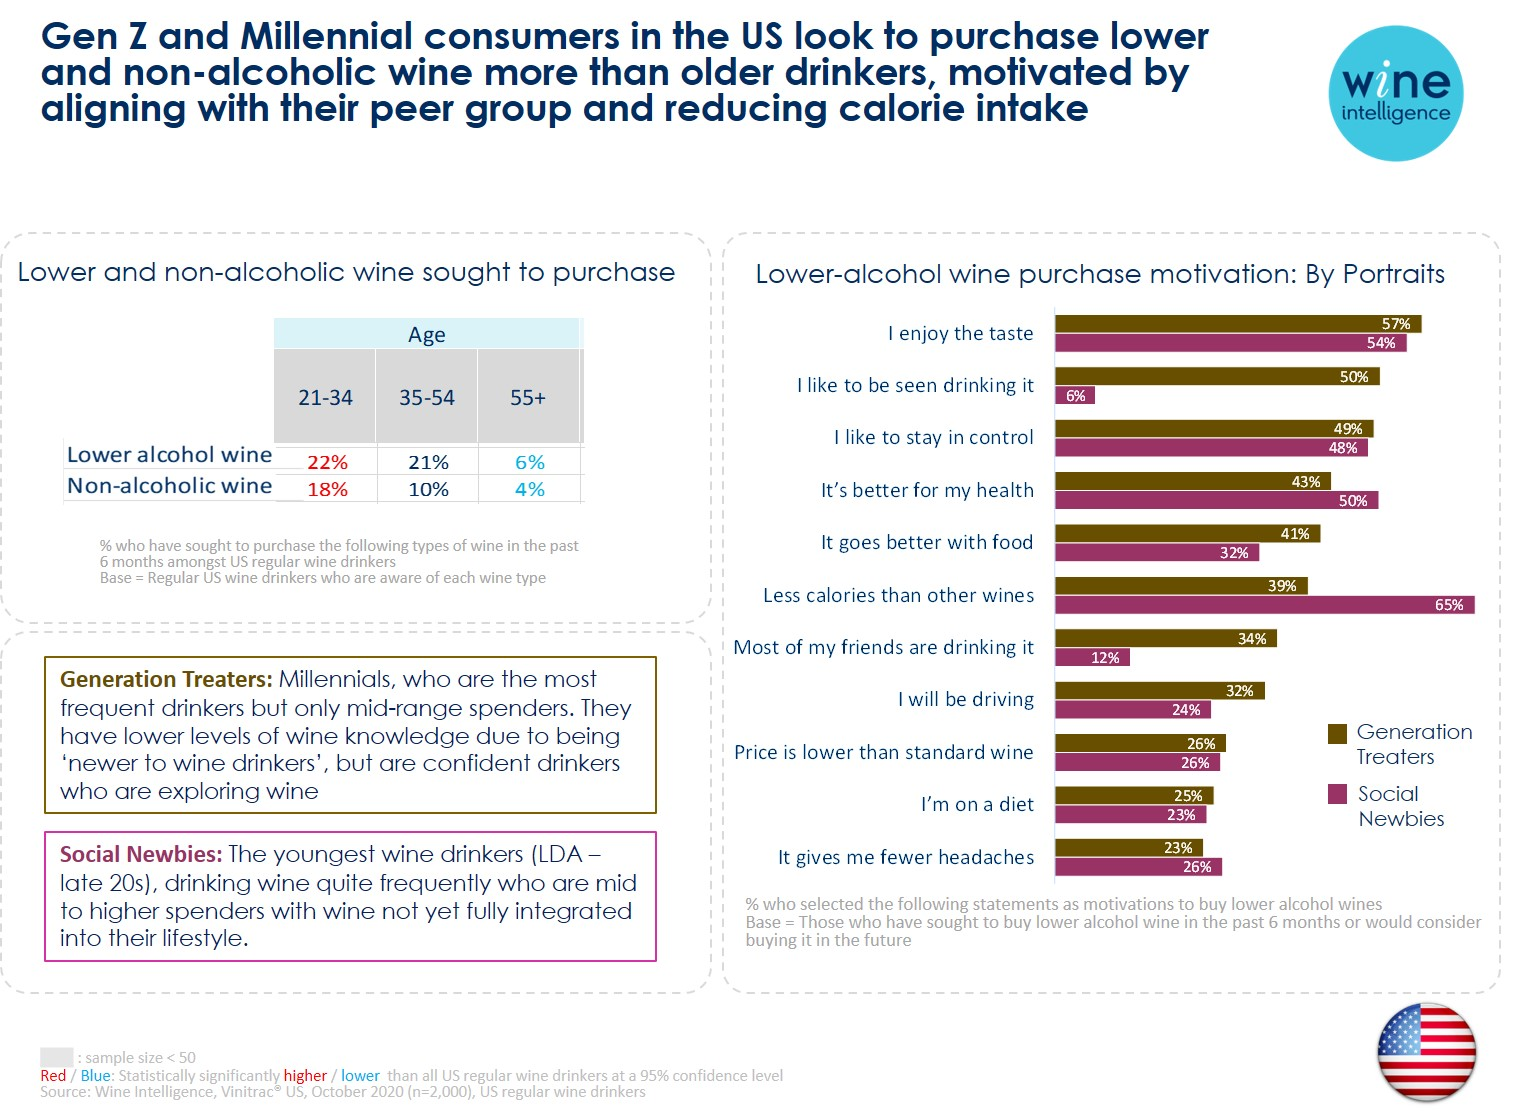 Low no alc infographic 1 - Gen Z and Millennial consumers in the US look to purchase lower and non-alcoholic wine more than older drinkers, motivated by aligning with their peer group and reducing calorie intake